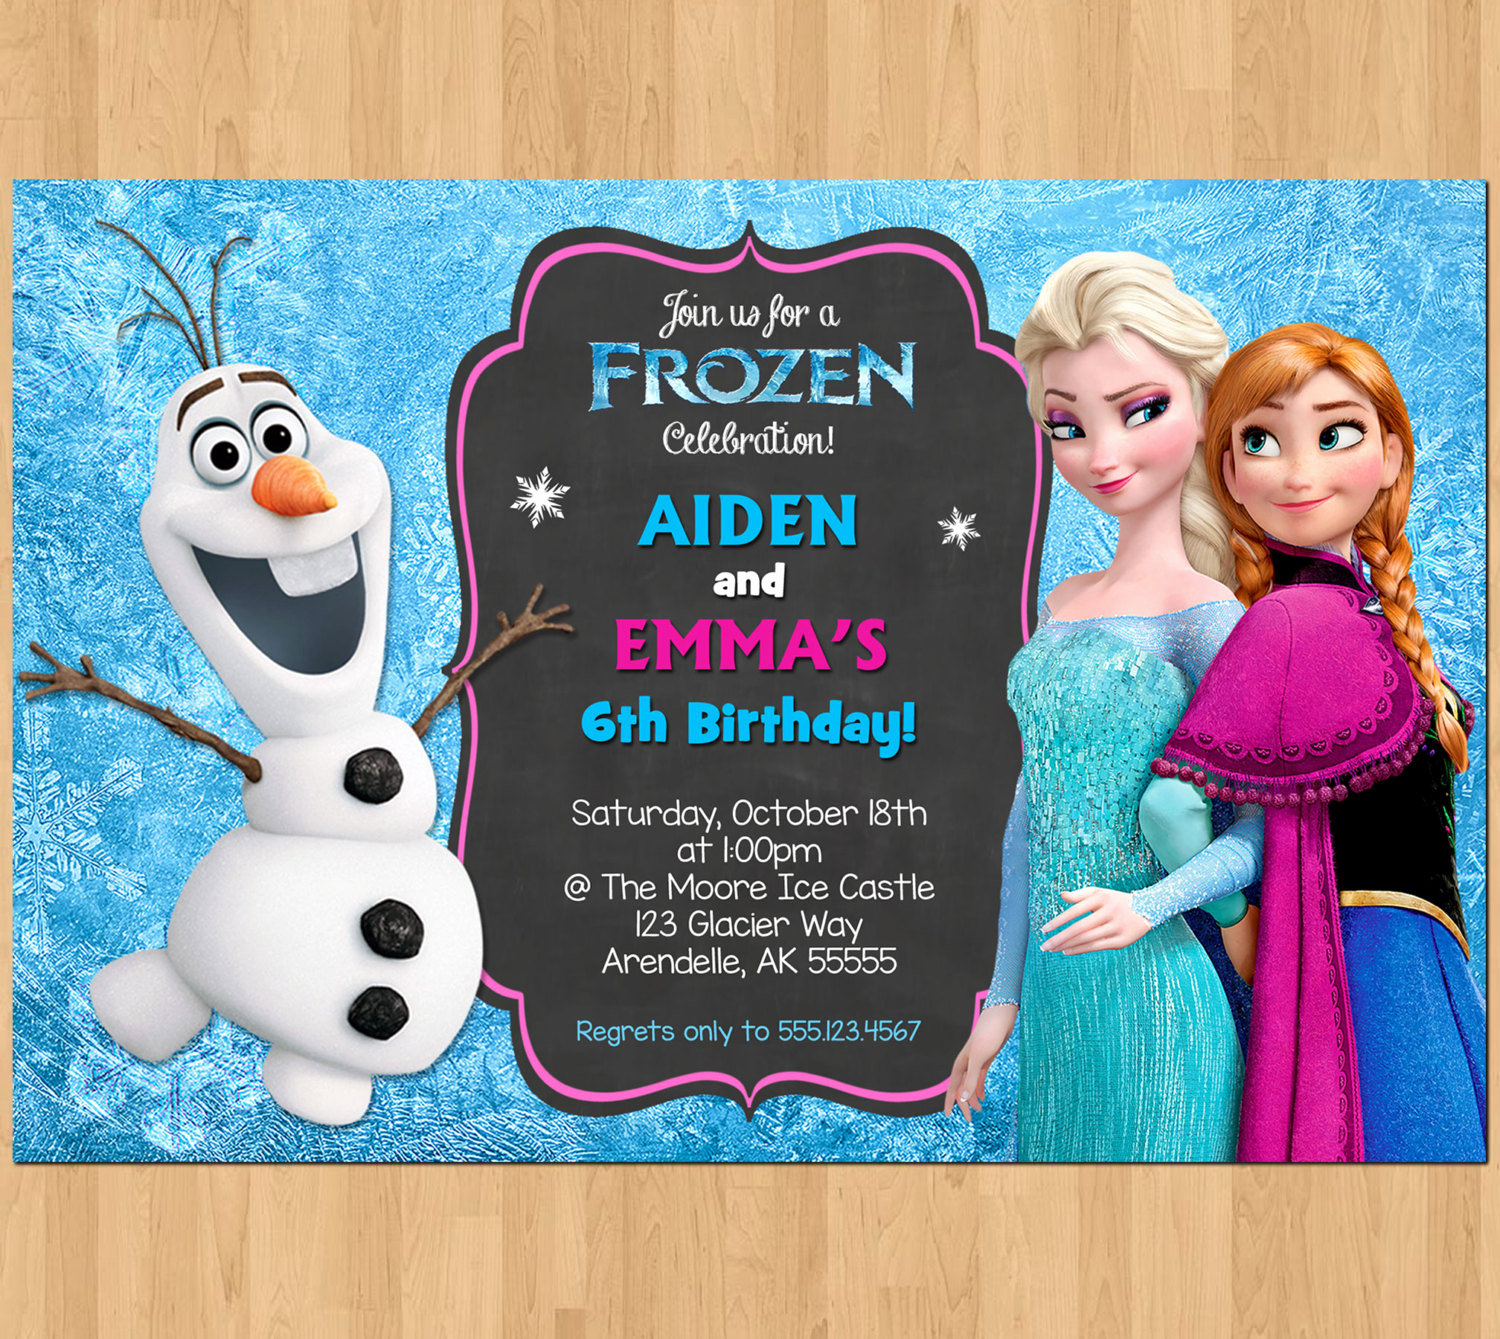 Frozen Party Invitation Templates Best Of Sibling Birthday Invitation Frozen Invitation Olaf Elsa Anna